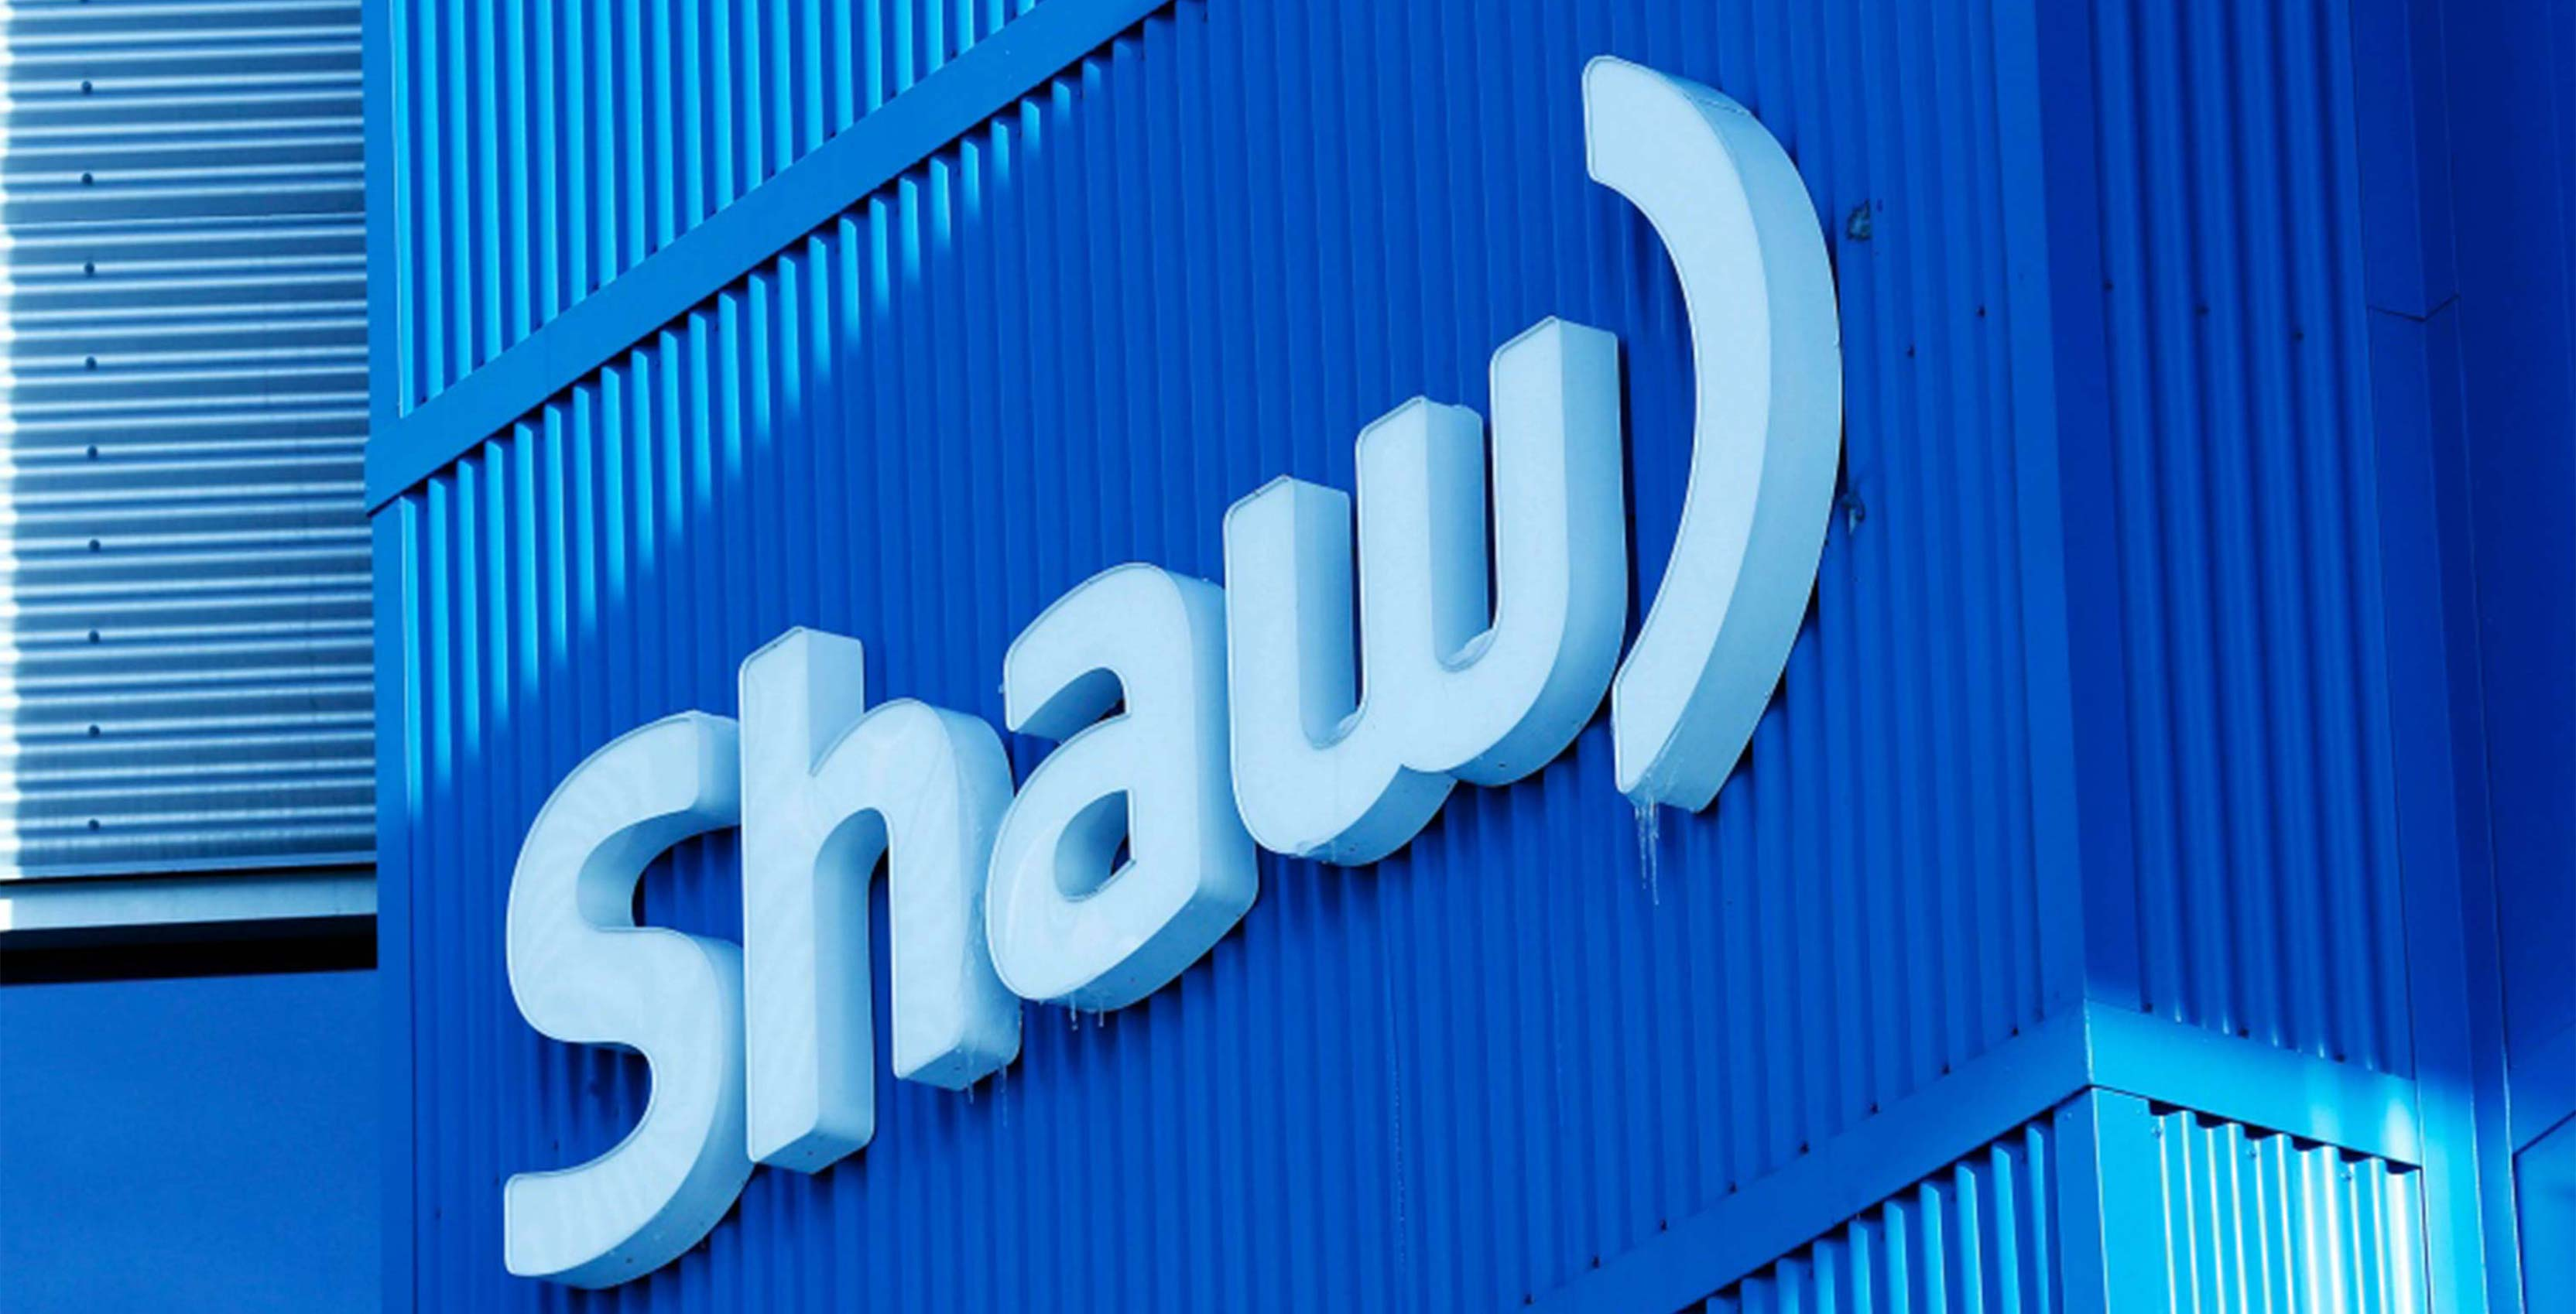 Canaccord Genuity Reiterates $28.00 Price Target for Shaw Communications (SJR)